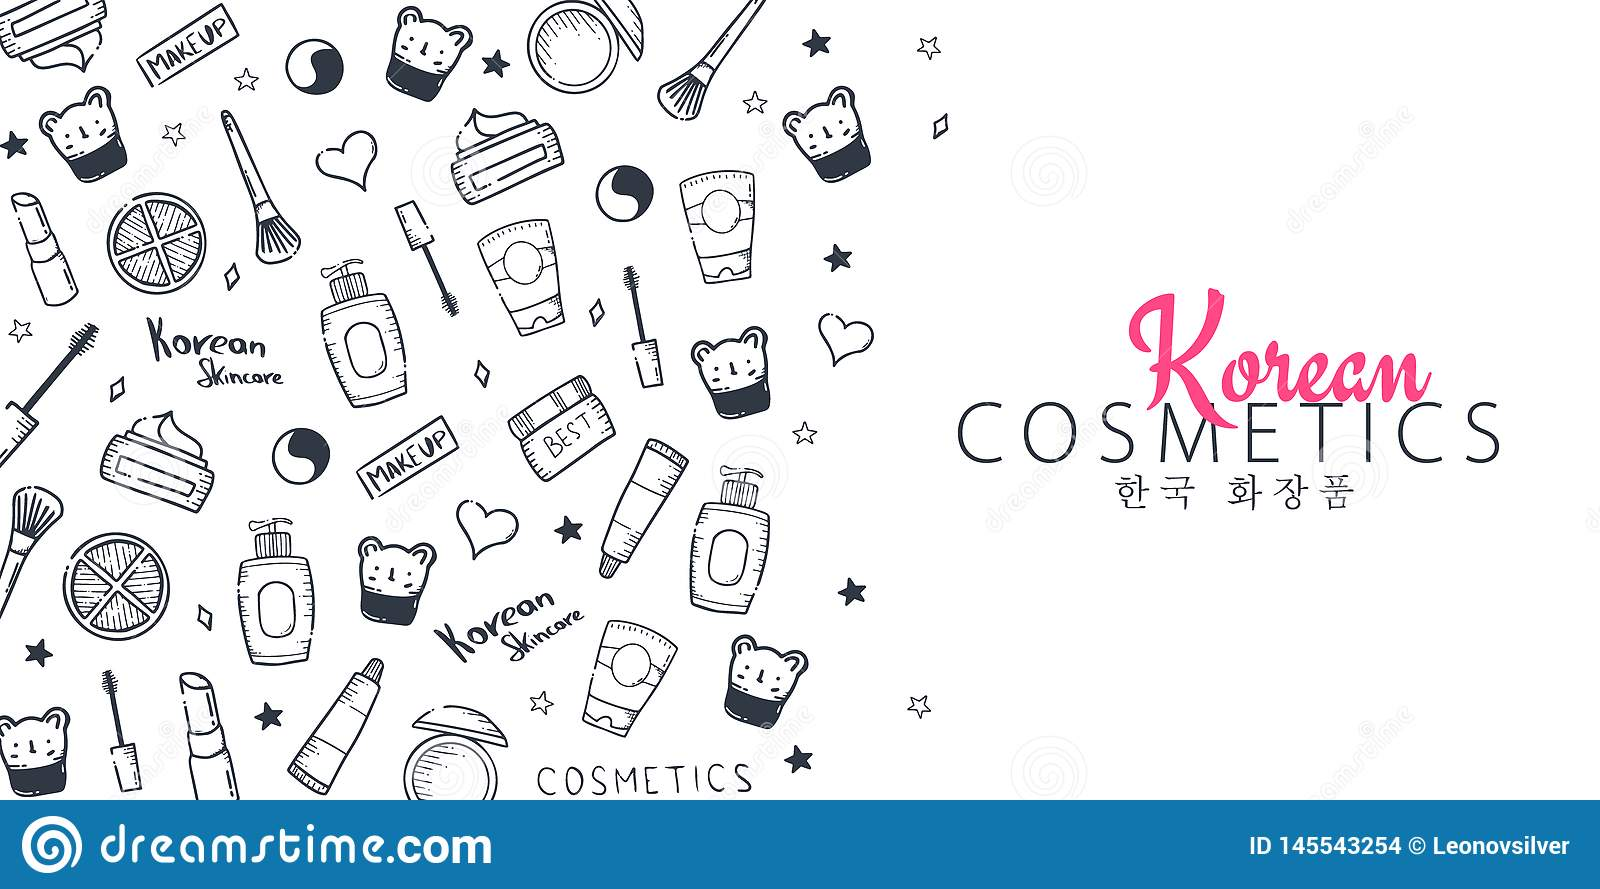 Korean Cosmetics K Beauty Banner With Hand Draw Doodle Background Skincare And Makeup Translation Korean Cosmetics Stock Vector Illustration Of Isolated Beautiful 145543254